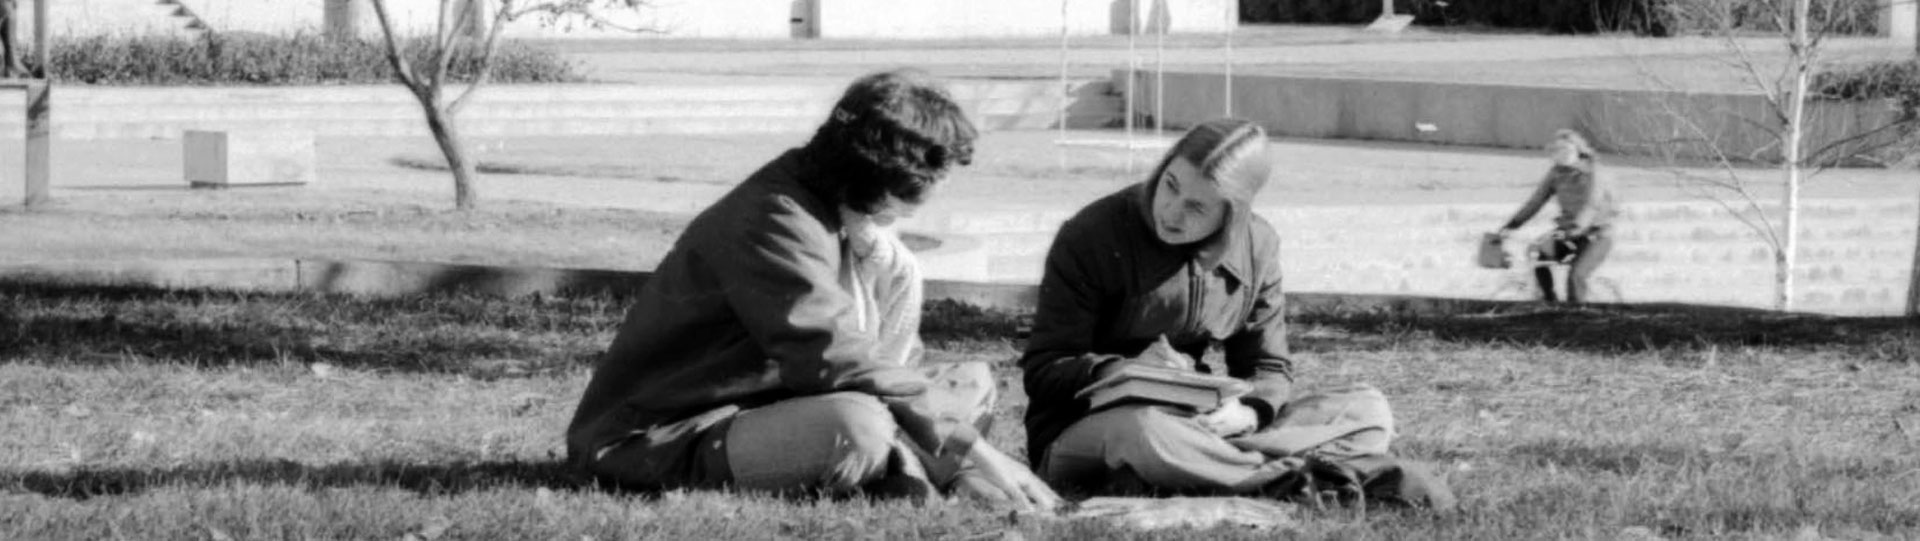 Photo of students on campus from archives and special collections